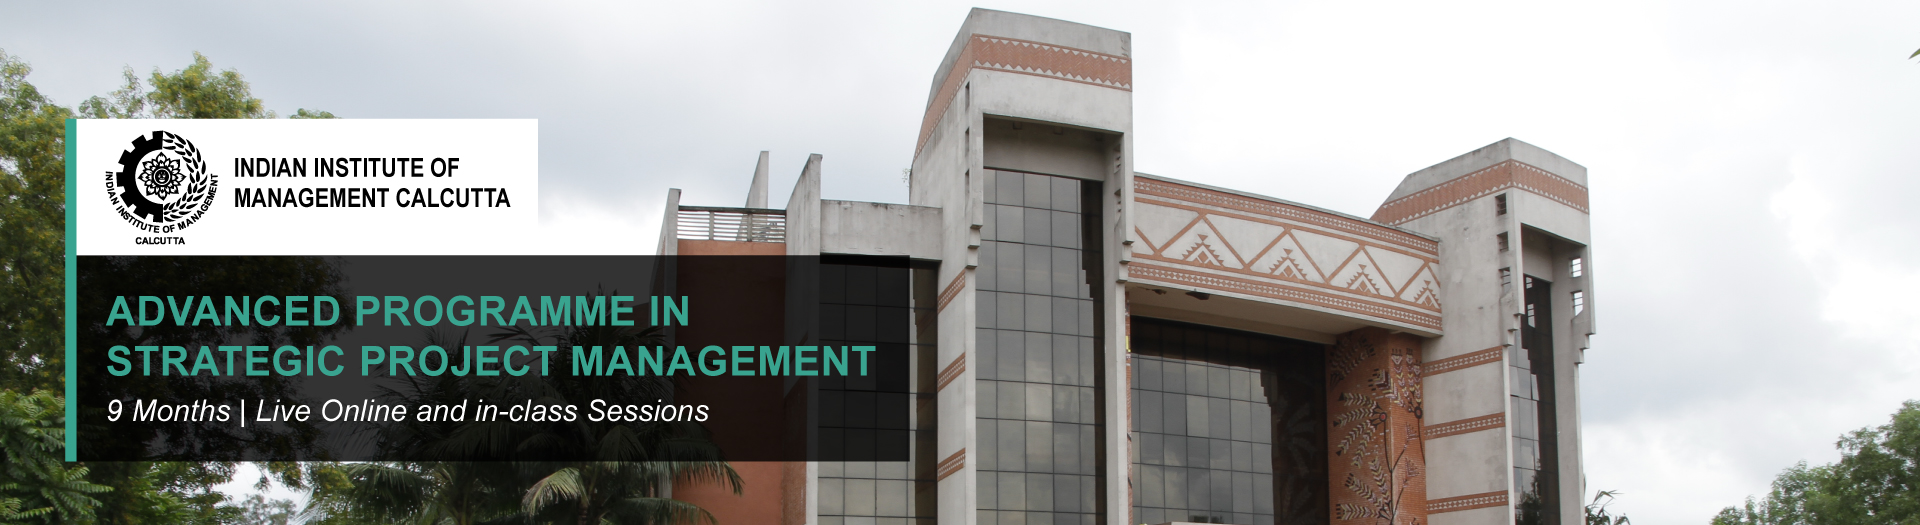 ADVANCED PROGRAMME IN STRATEGIC PROJECT MANAGEMENT